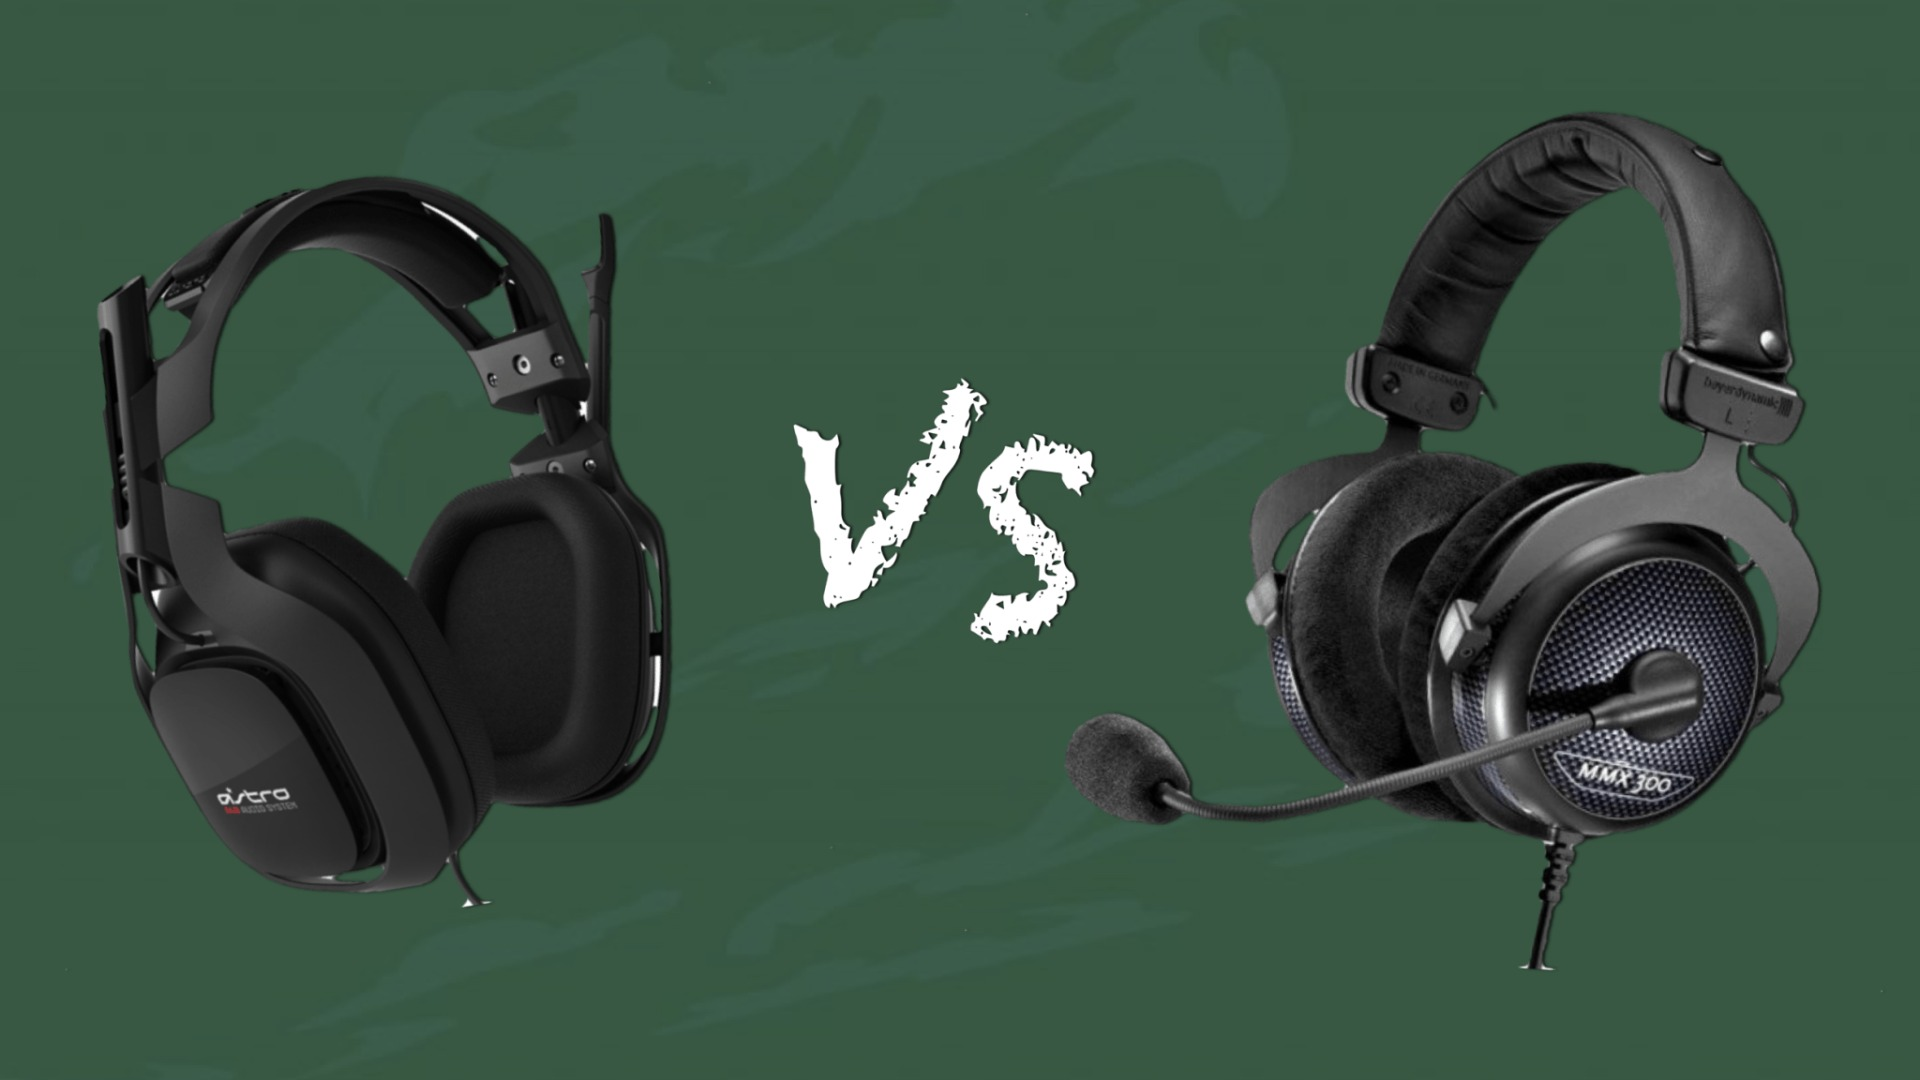 Photo de [VIDEO] Comparatif entre deux casques, le MMX-300 et l'A40